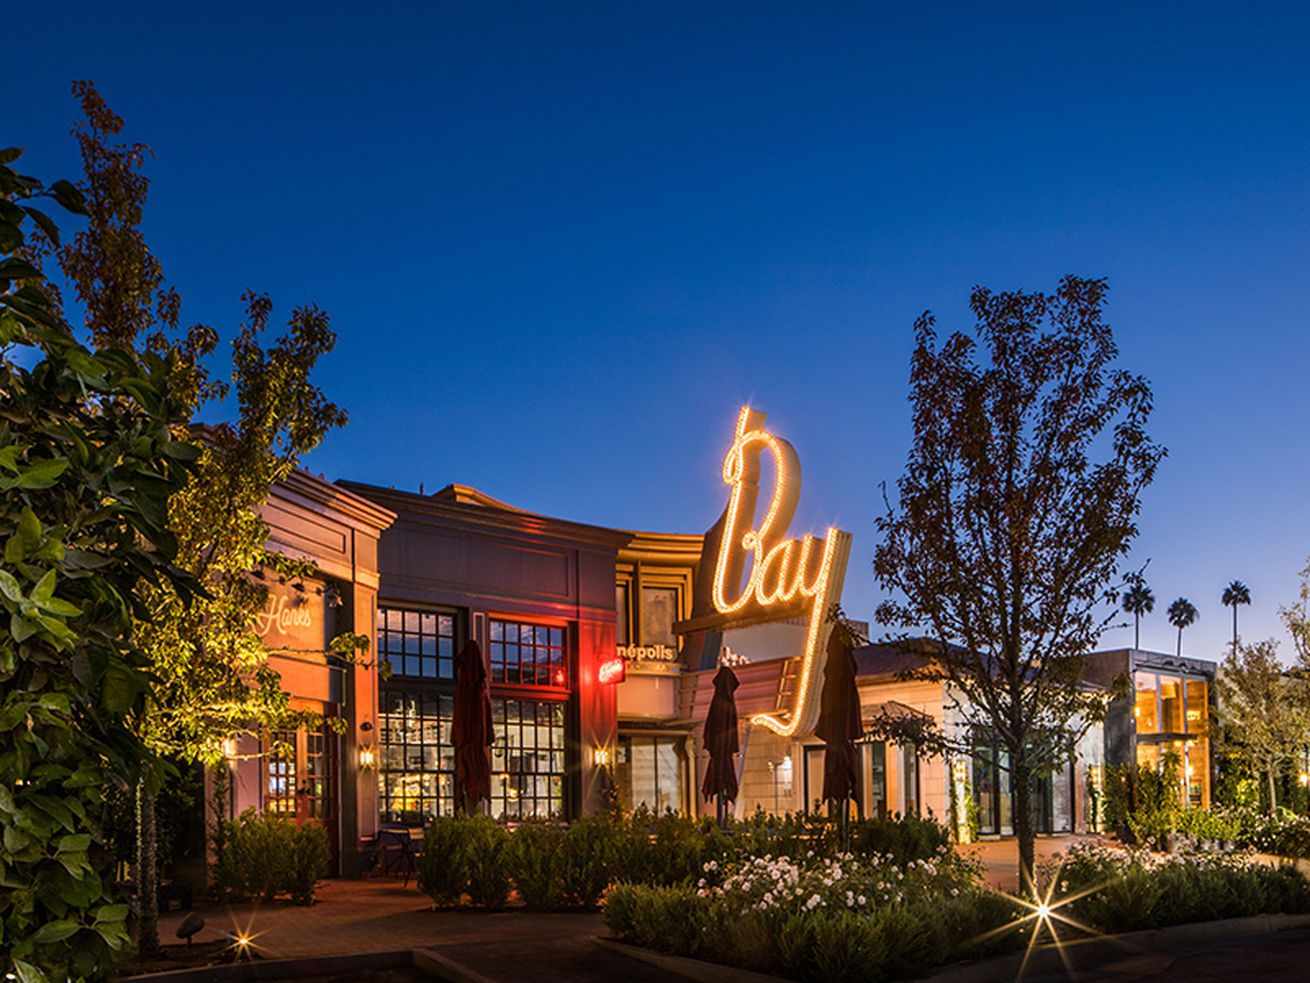 The Bay Theatre by Cinépolis Luxury Cinemas